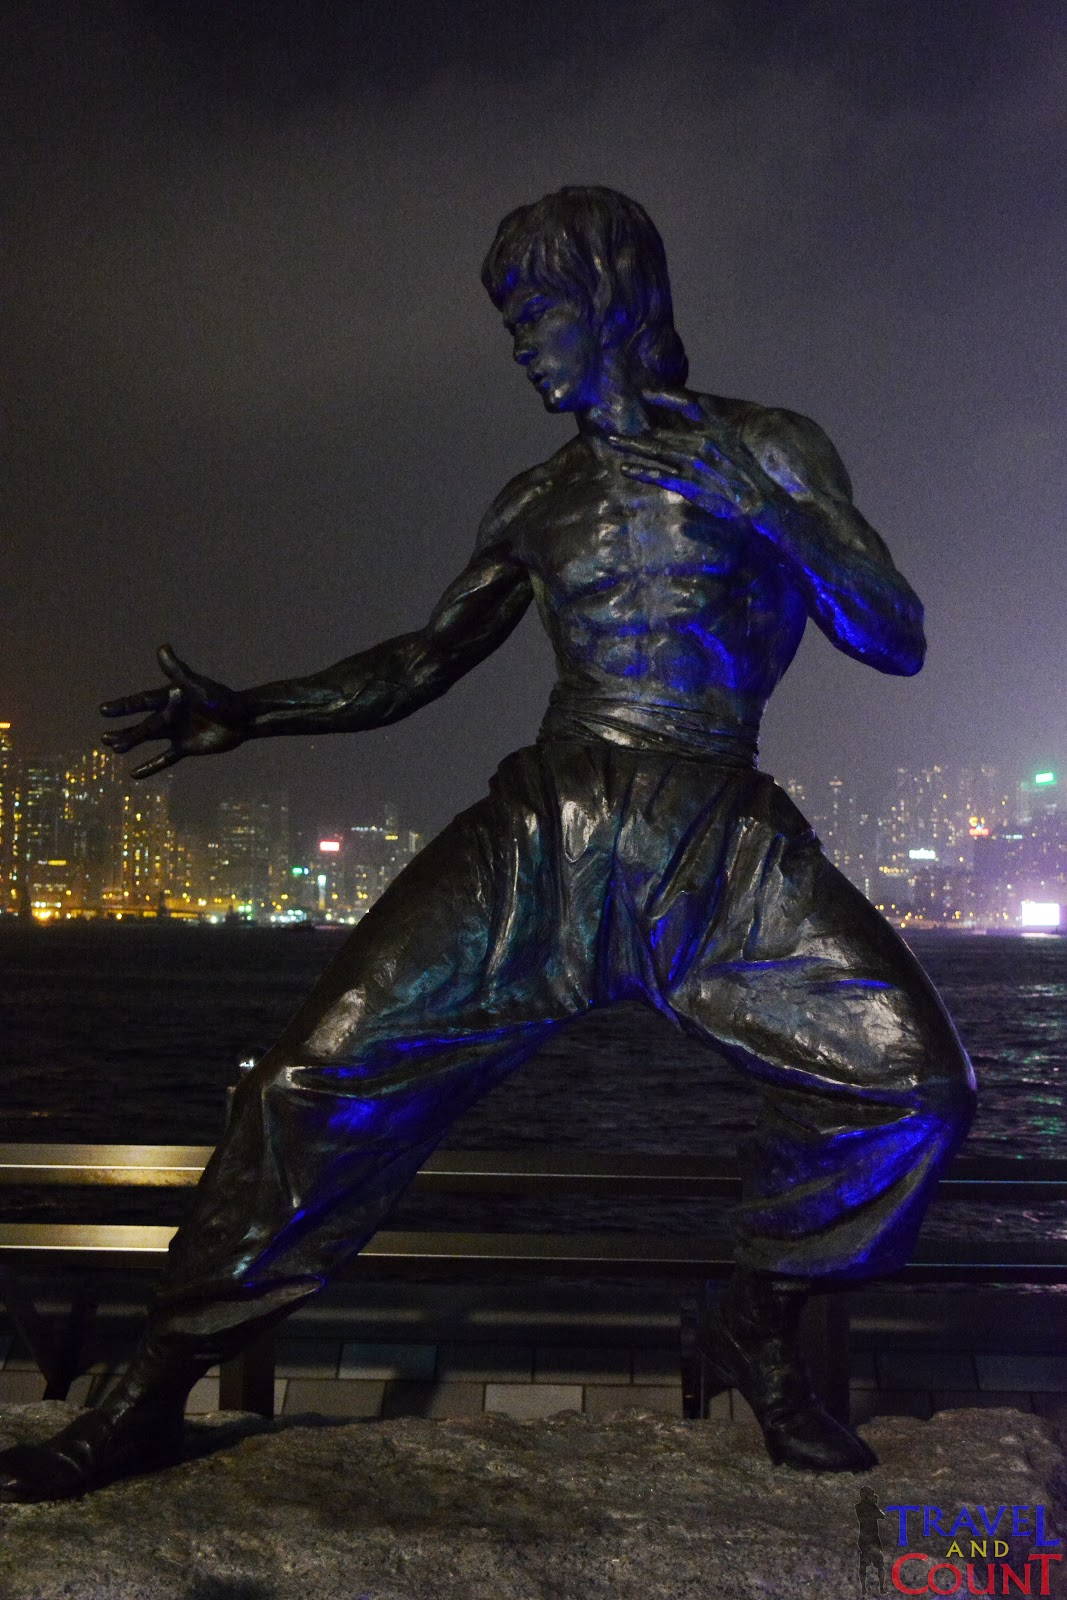 Bruce Lee Statue at Avenue of the stars